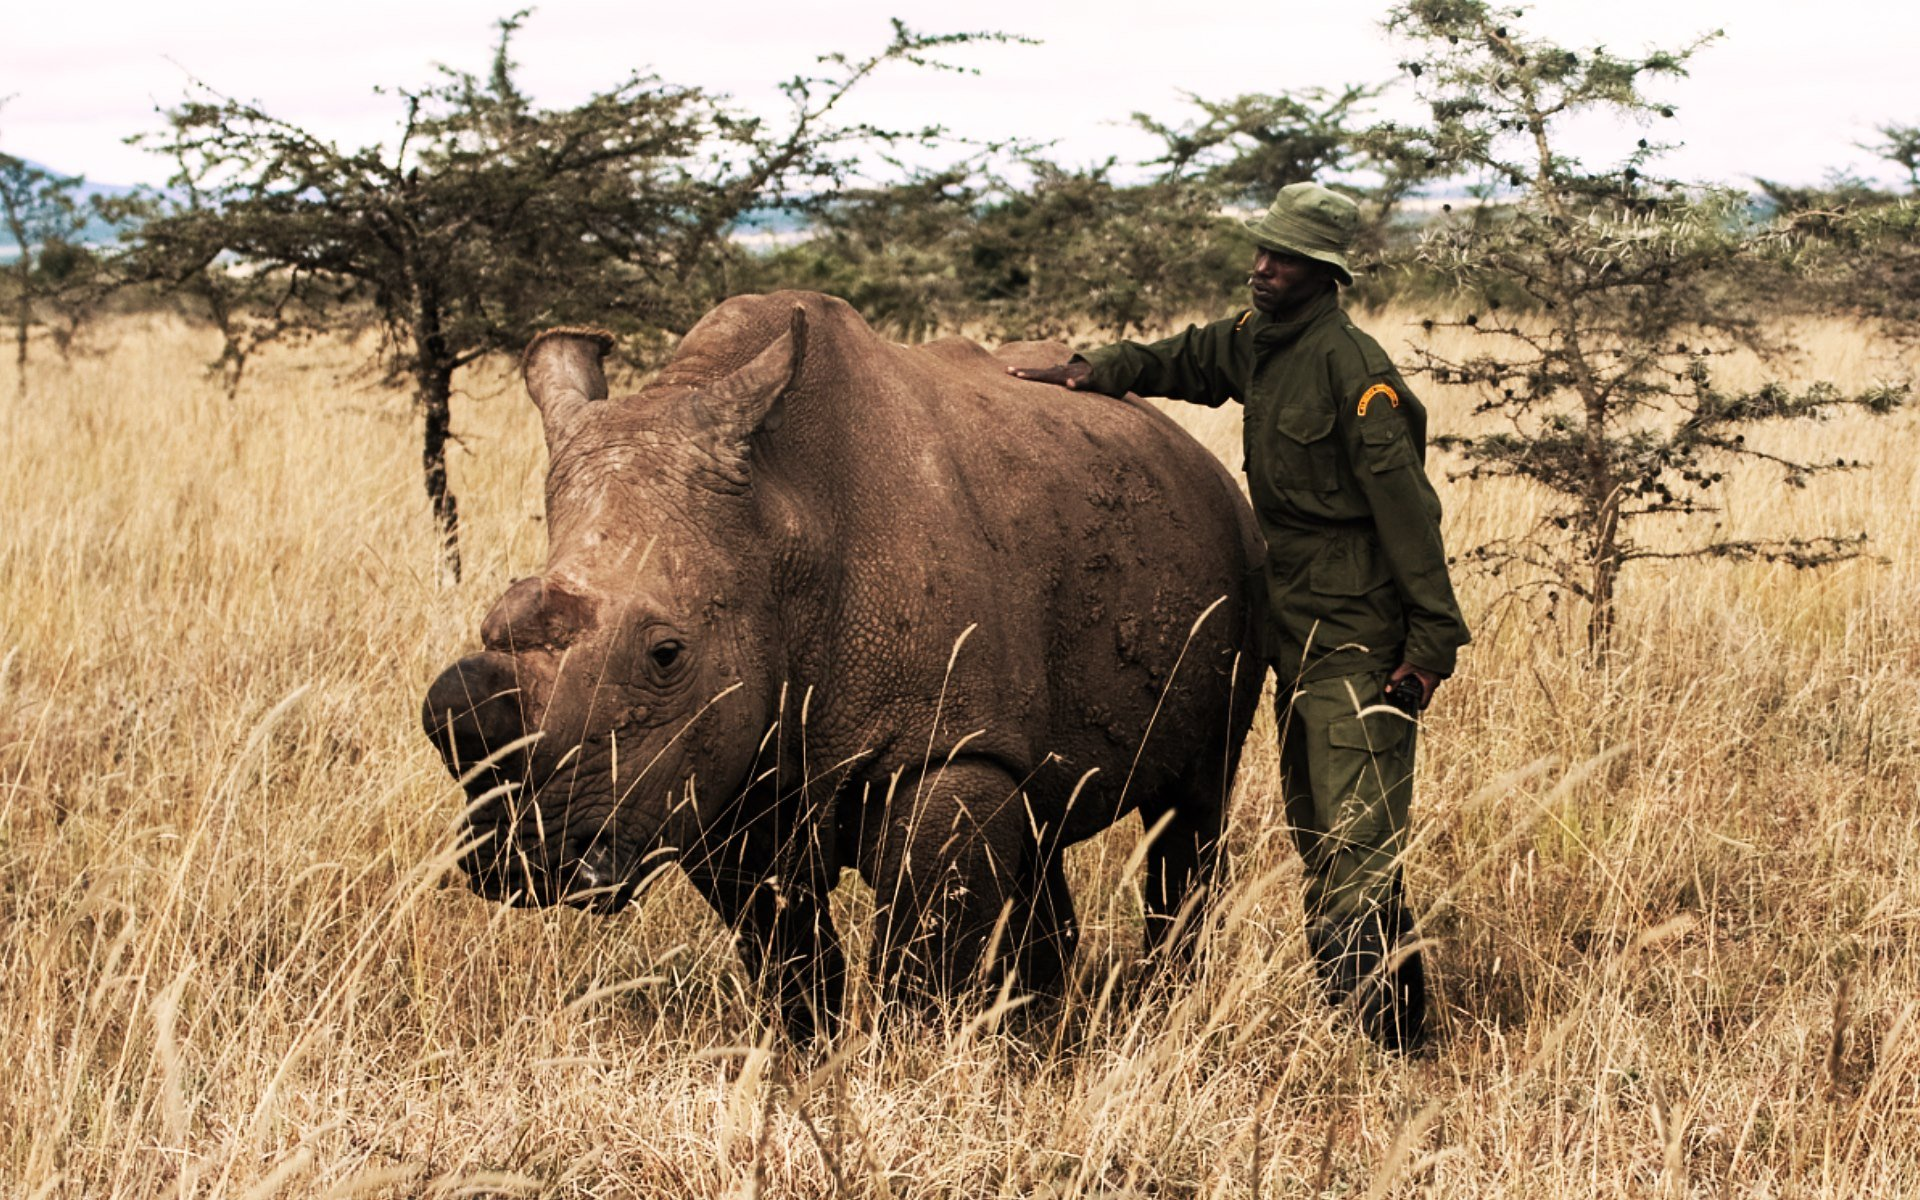 The last hope for the world's most endangered mammal, the northern white rhino, now rests on artificial reproduction, experts have said.